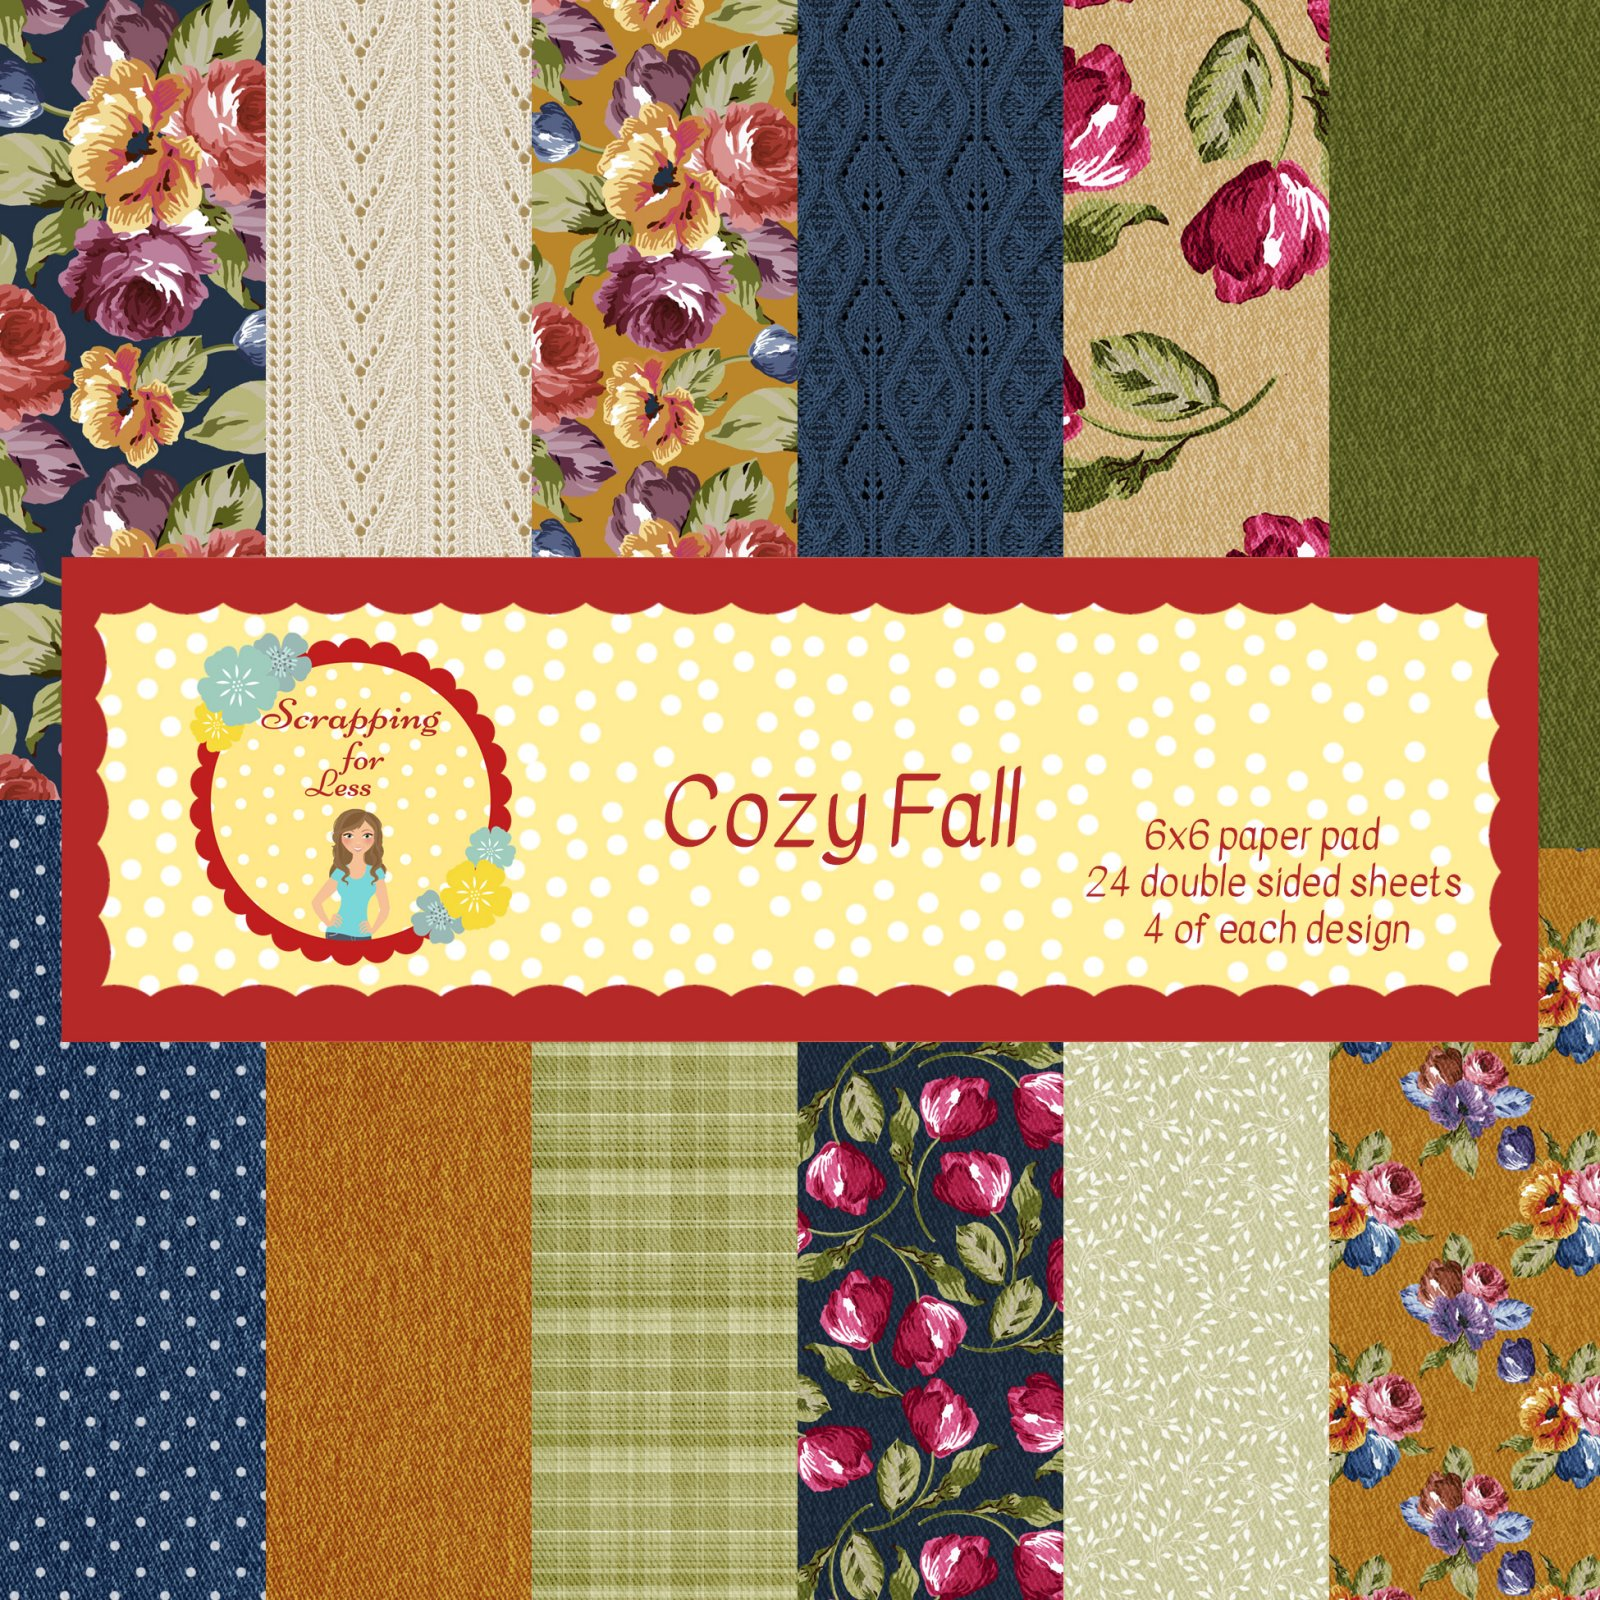 Scrapping for Less Cozy Fall 6x6 Paper Pad